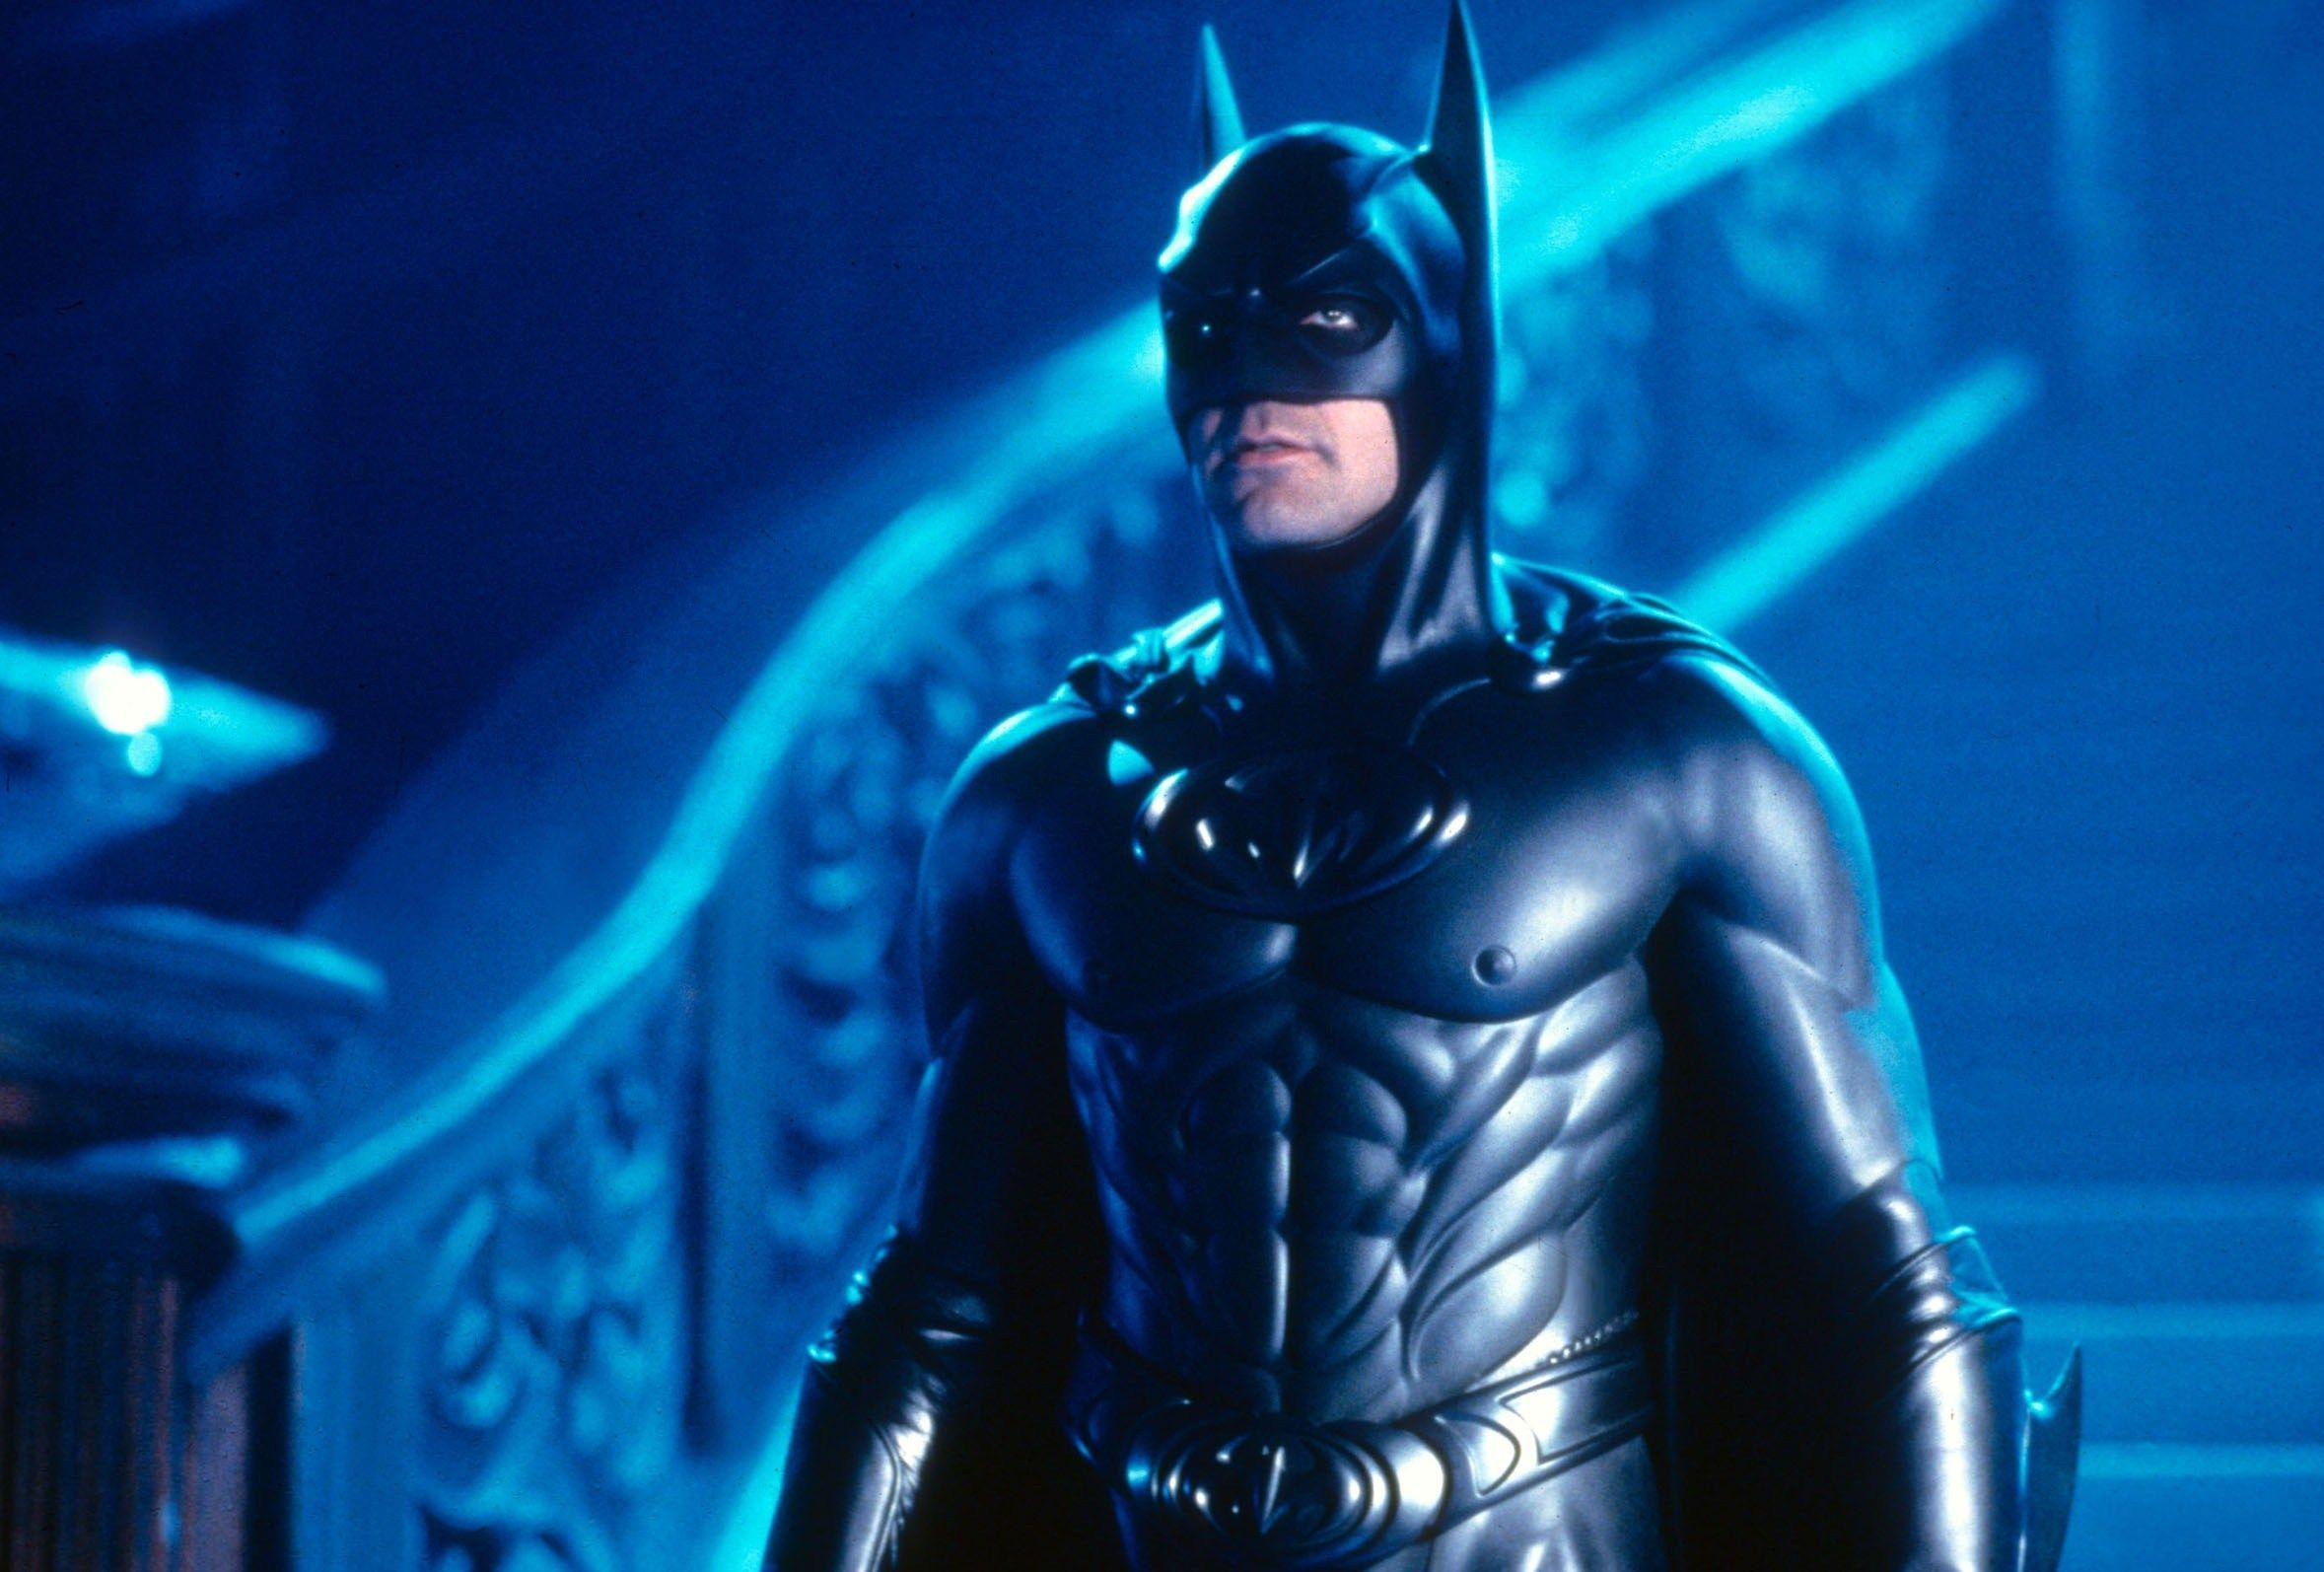 George Clooney Is Completely Forgiven For 'Batman & Robin', Says Joel Schumacher